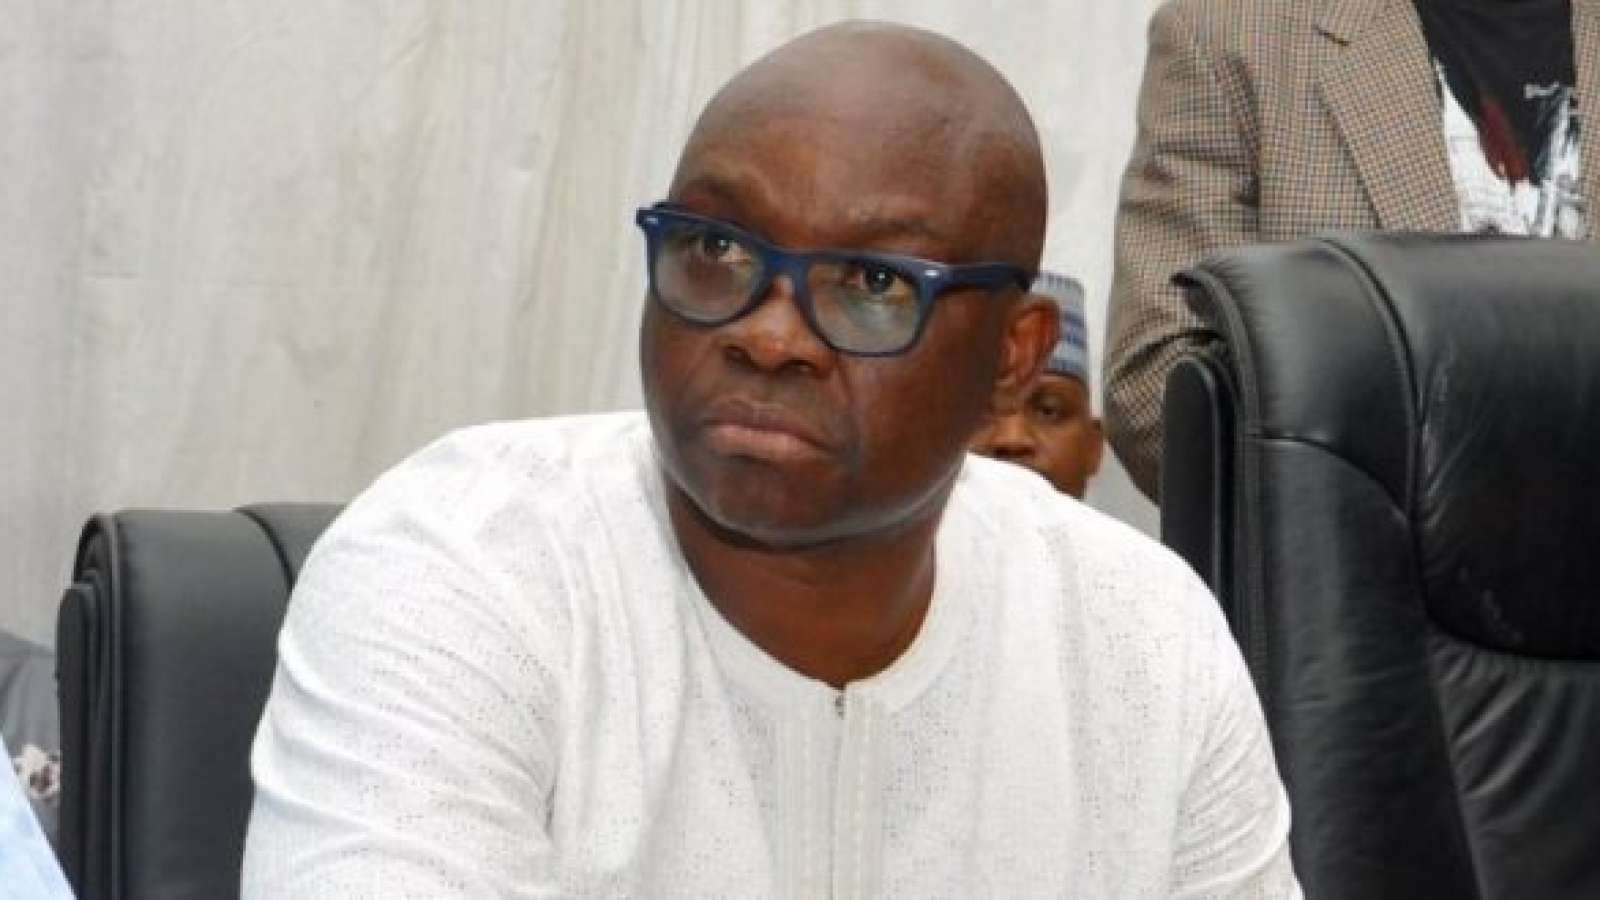 fayose, 'Linking me with APC is like associating me with armed robbers' Gov. Fayose denies plans to defect to ruling party